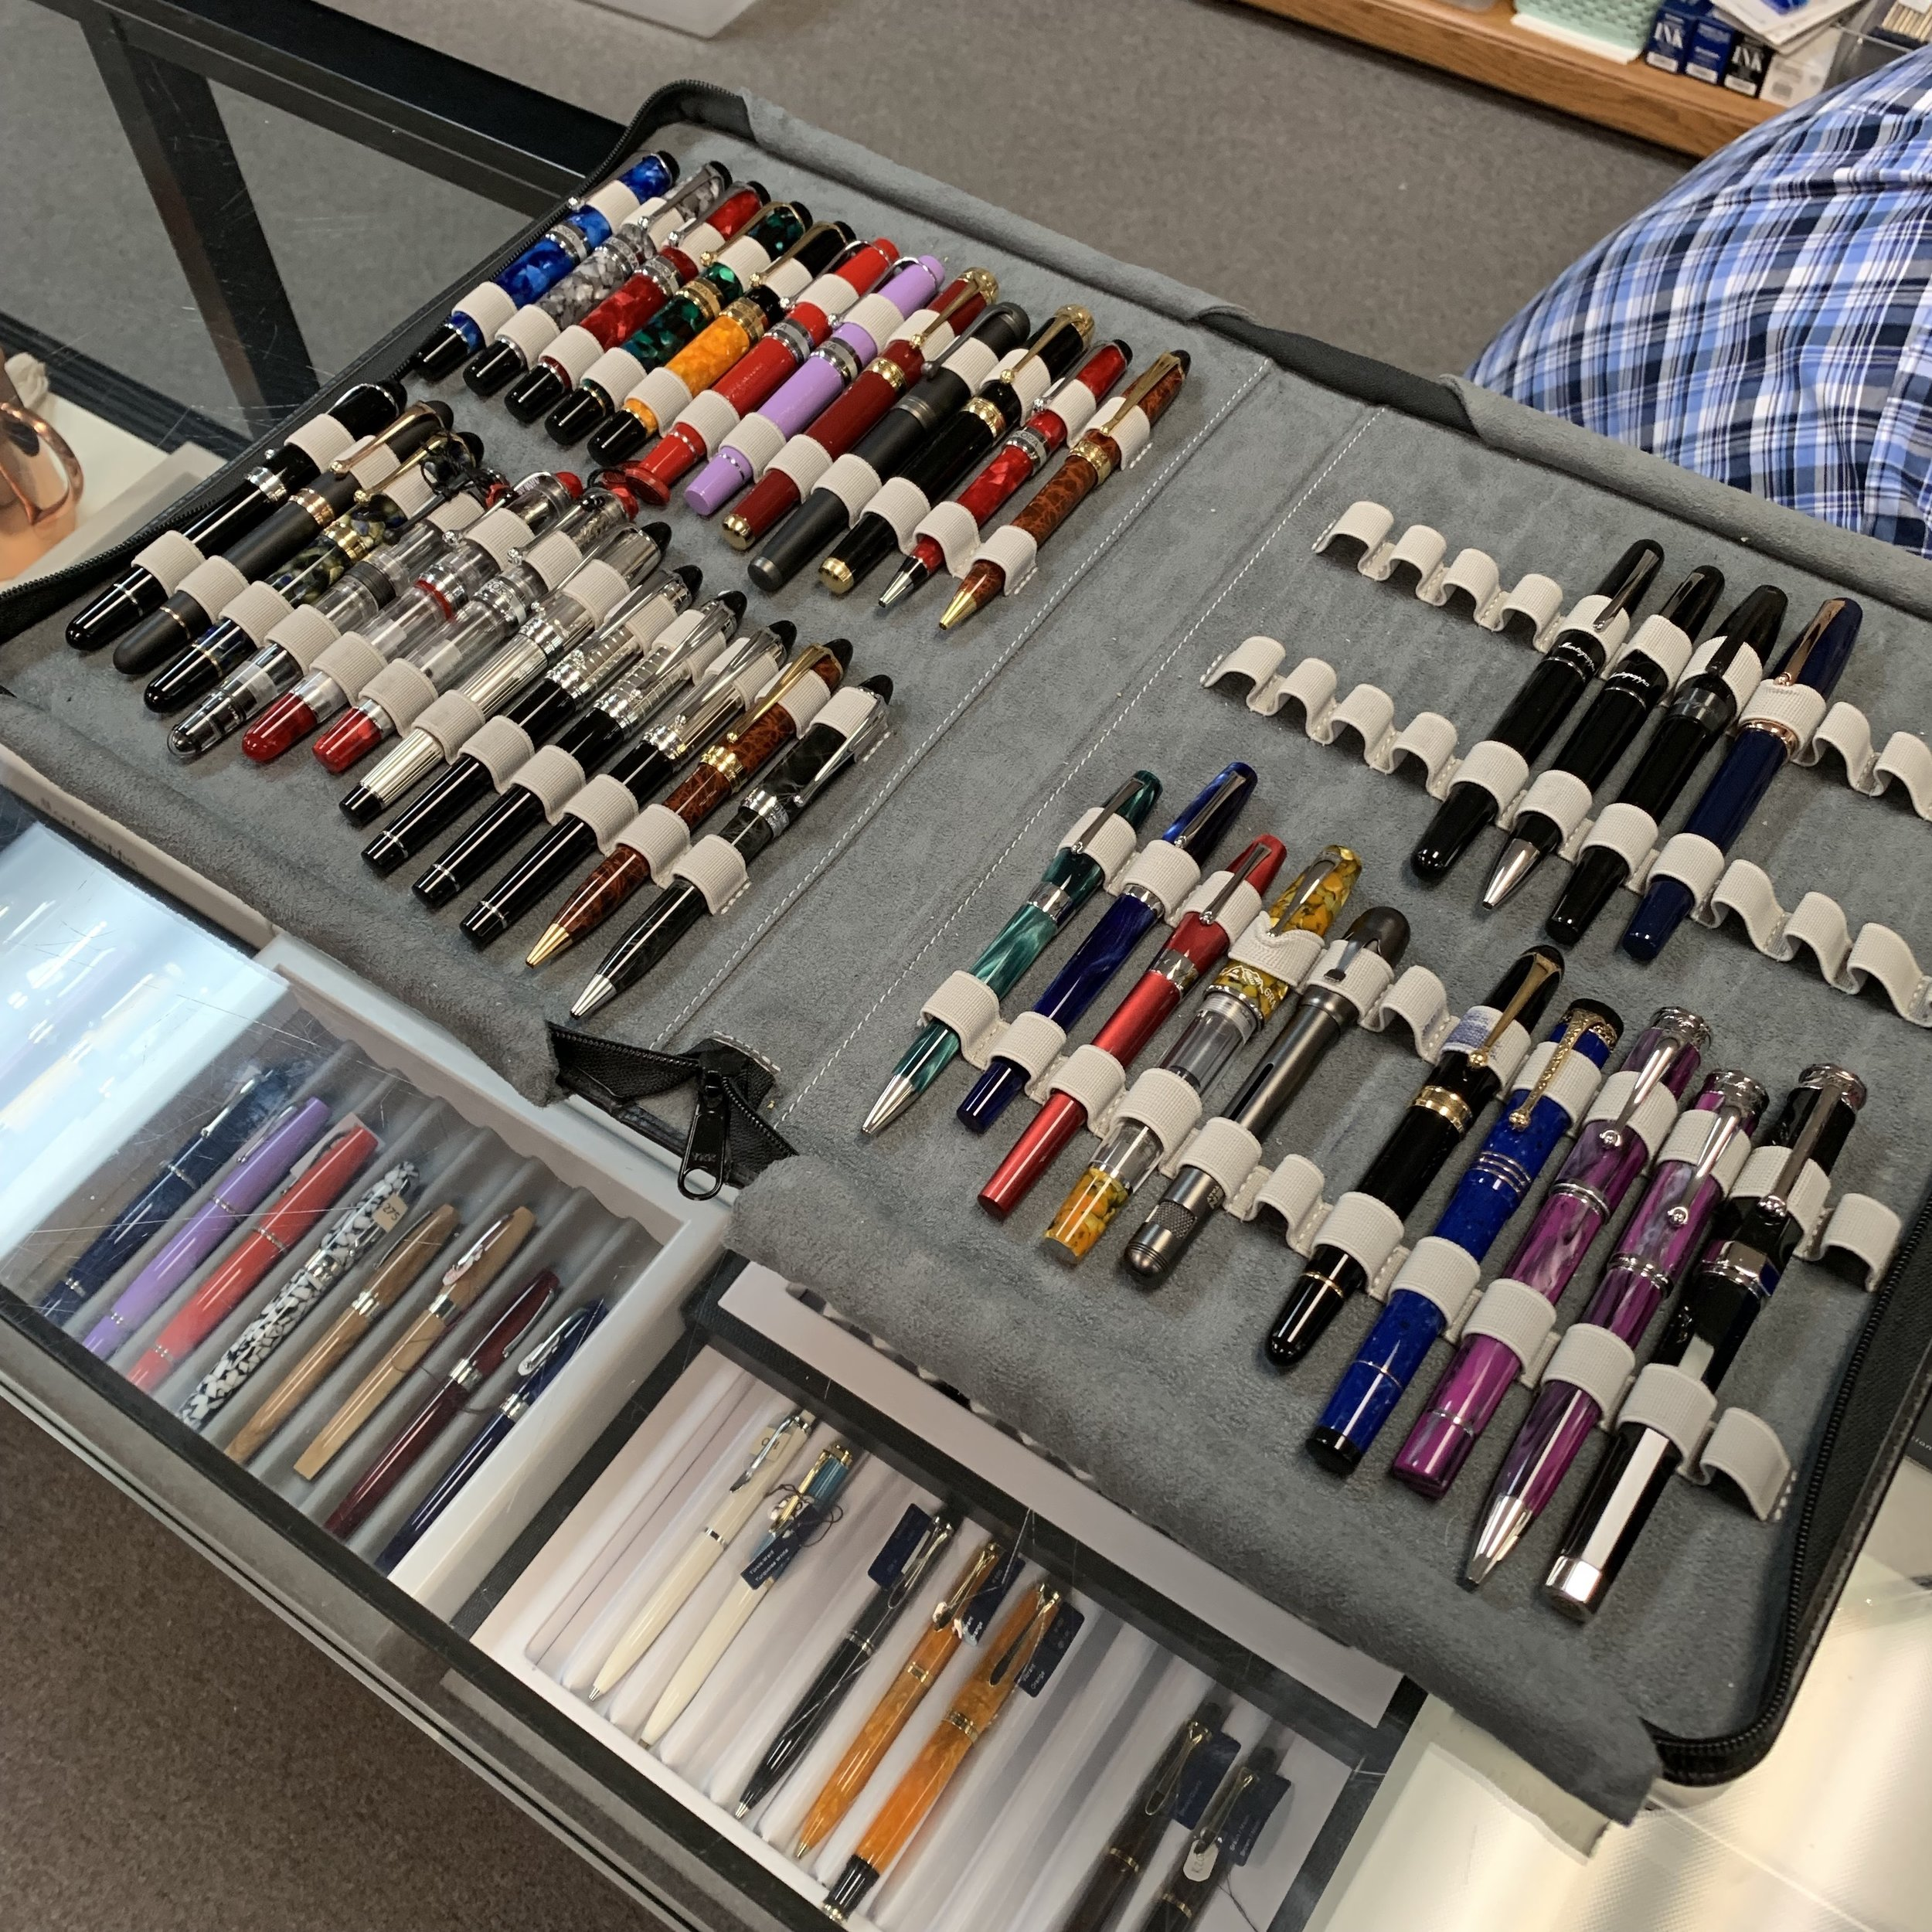 Cary Yeager of Kenro brought a wide variety of Montegrappa and Aurora to the Vanness open house, in addition to the selection Lisa and Mike already had in the store.